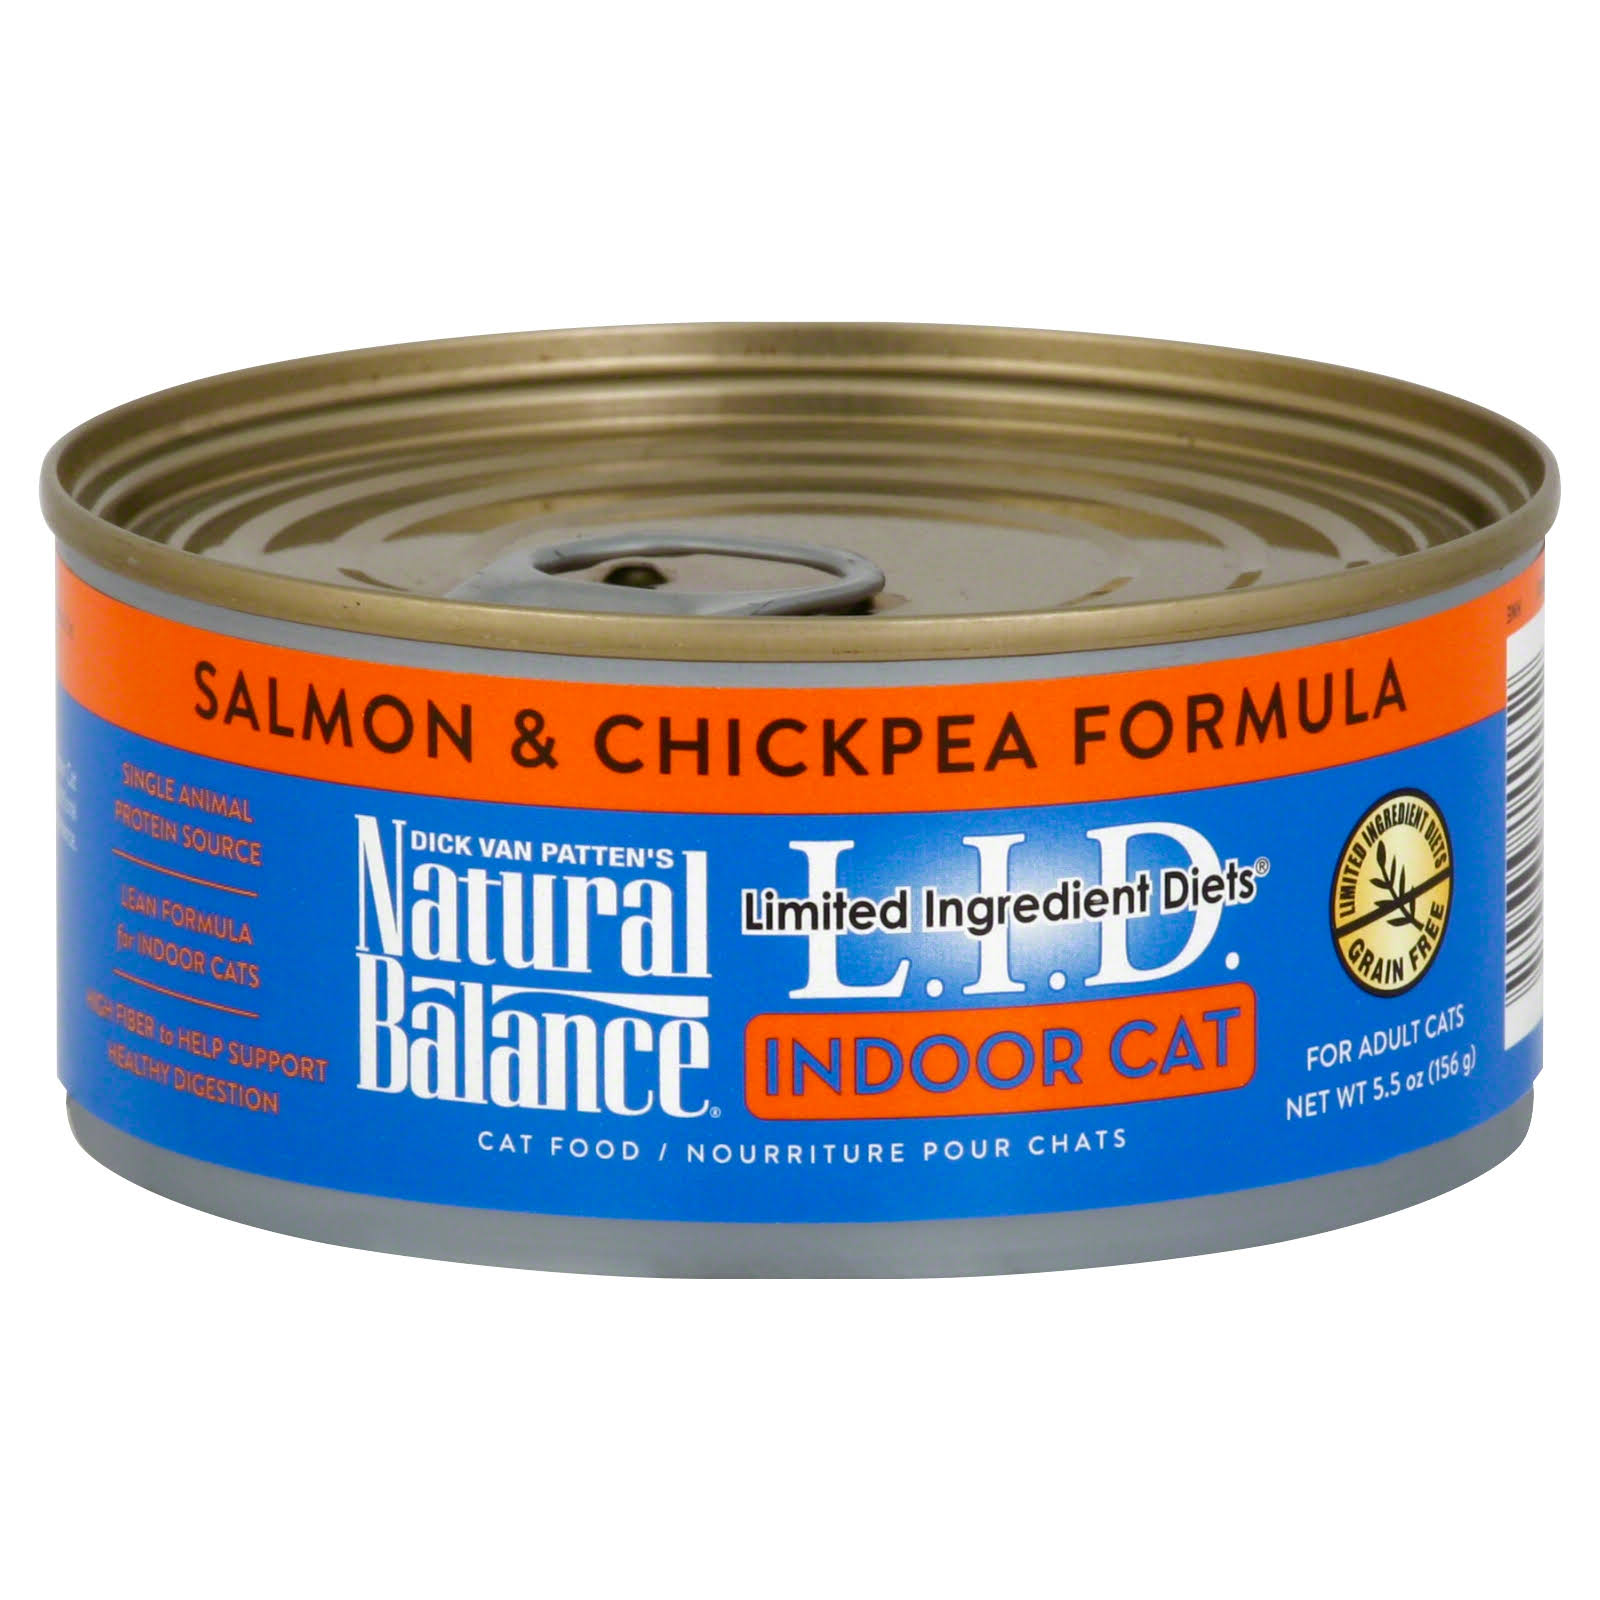 Natural Balance Lid Indoor Cat Food - Salmon & Chickpea Formula